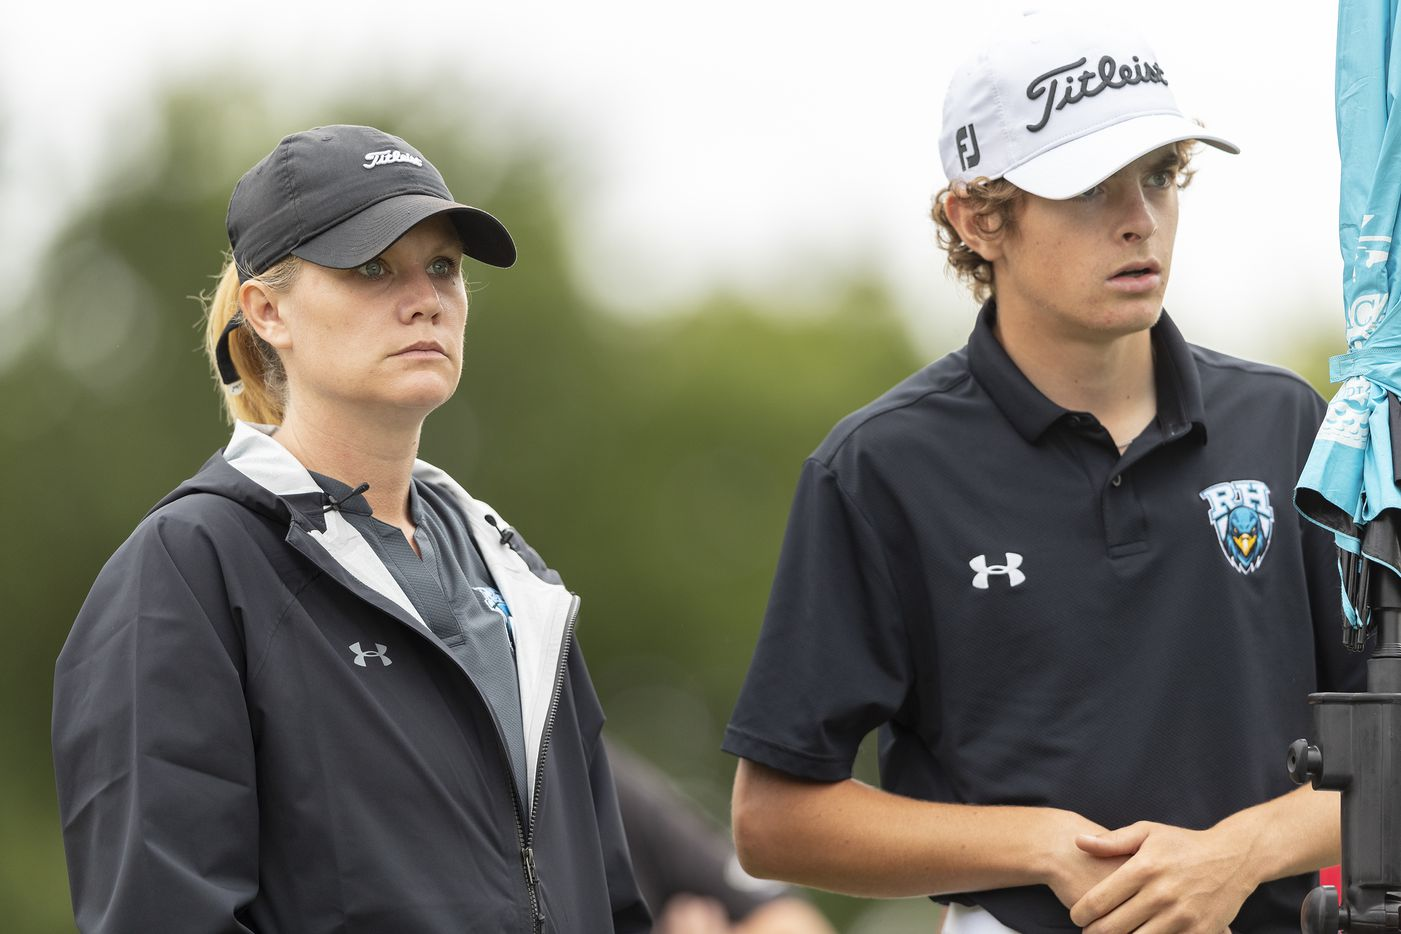 Prosper Rock Hill head coach head coach Taylur Reeder wait with Ryan Shellberg for others to hit from the 12th tee box during round 1 of the UIL Class 5A boys golf tournament in Georgetown, Monday, May 17, 2021. (Stephen Spillman/Special Contributor)